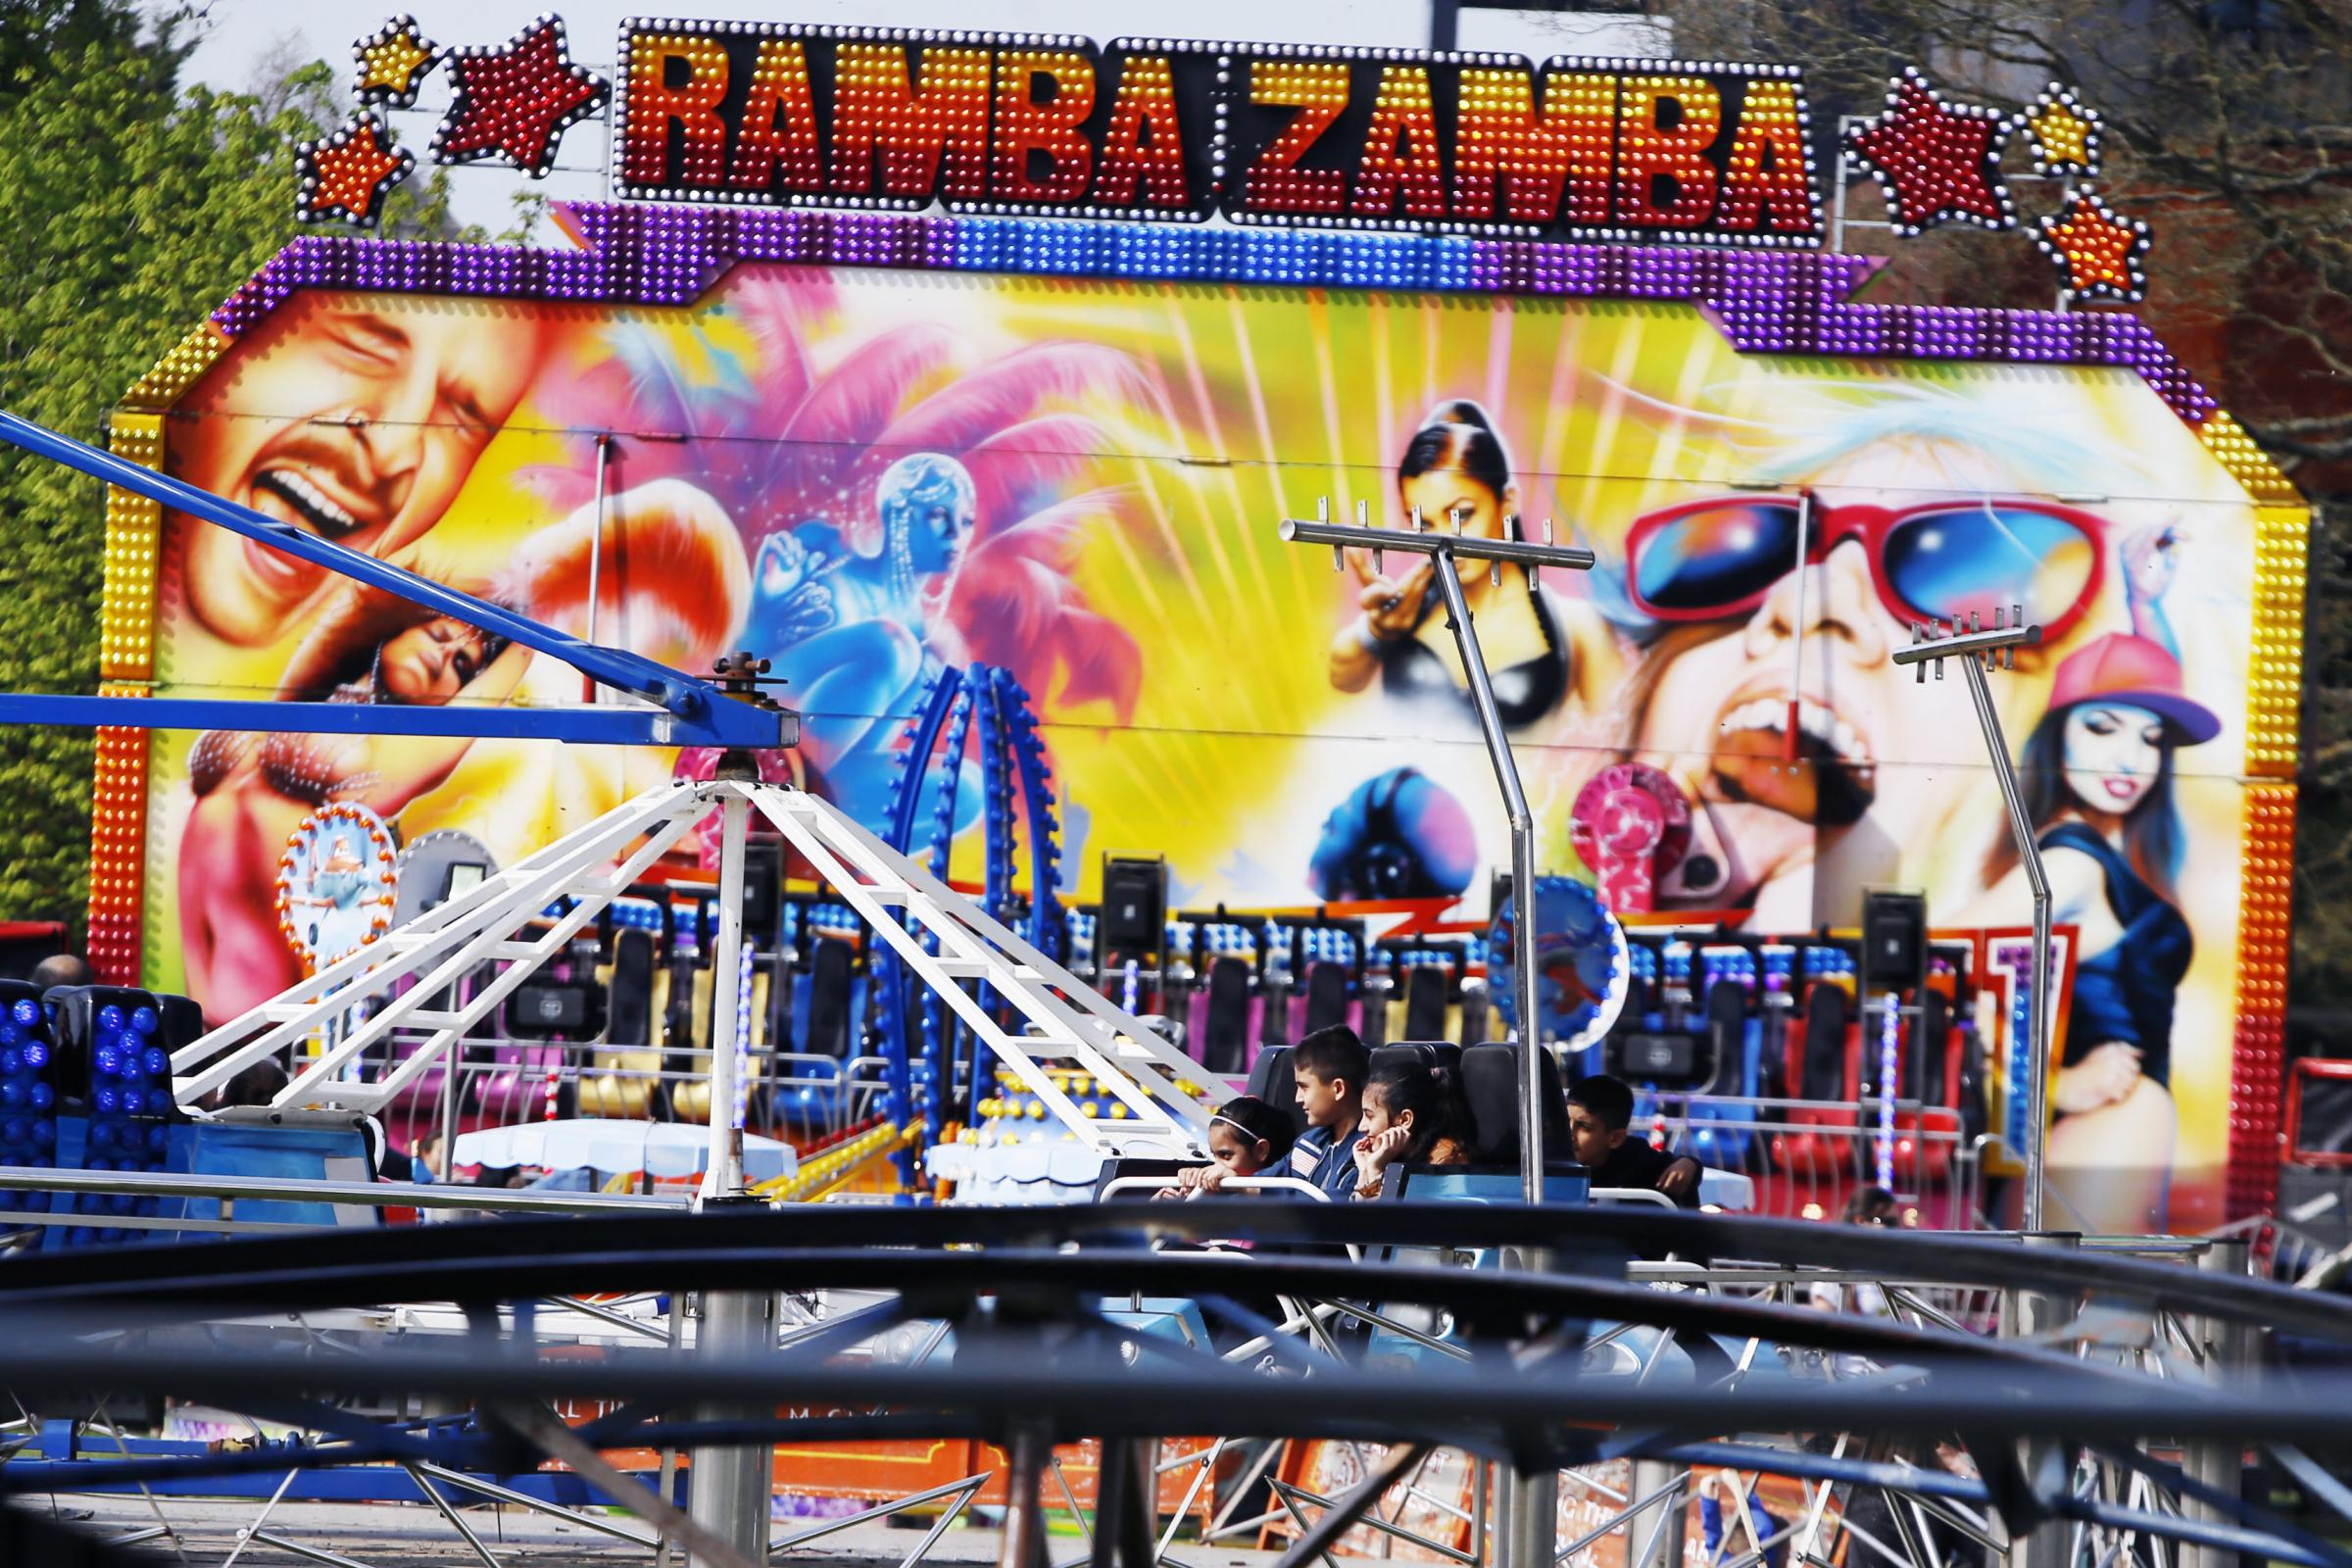 Funfair at Oxford's South Park says it is force out by new feeds